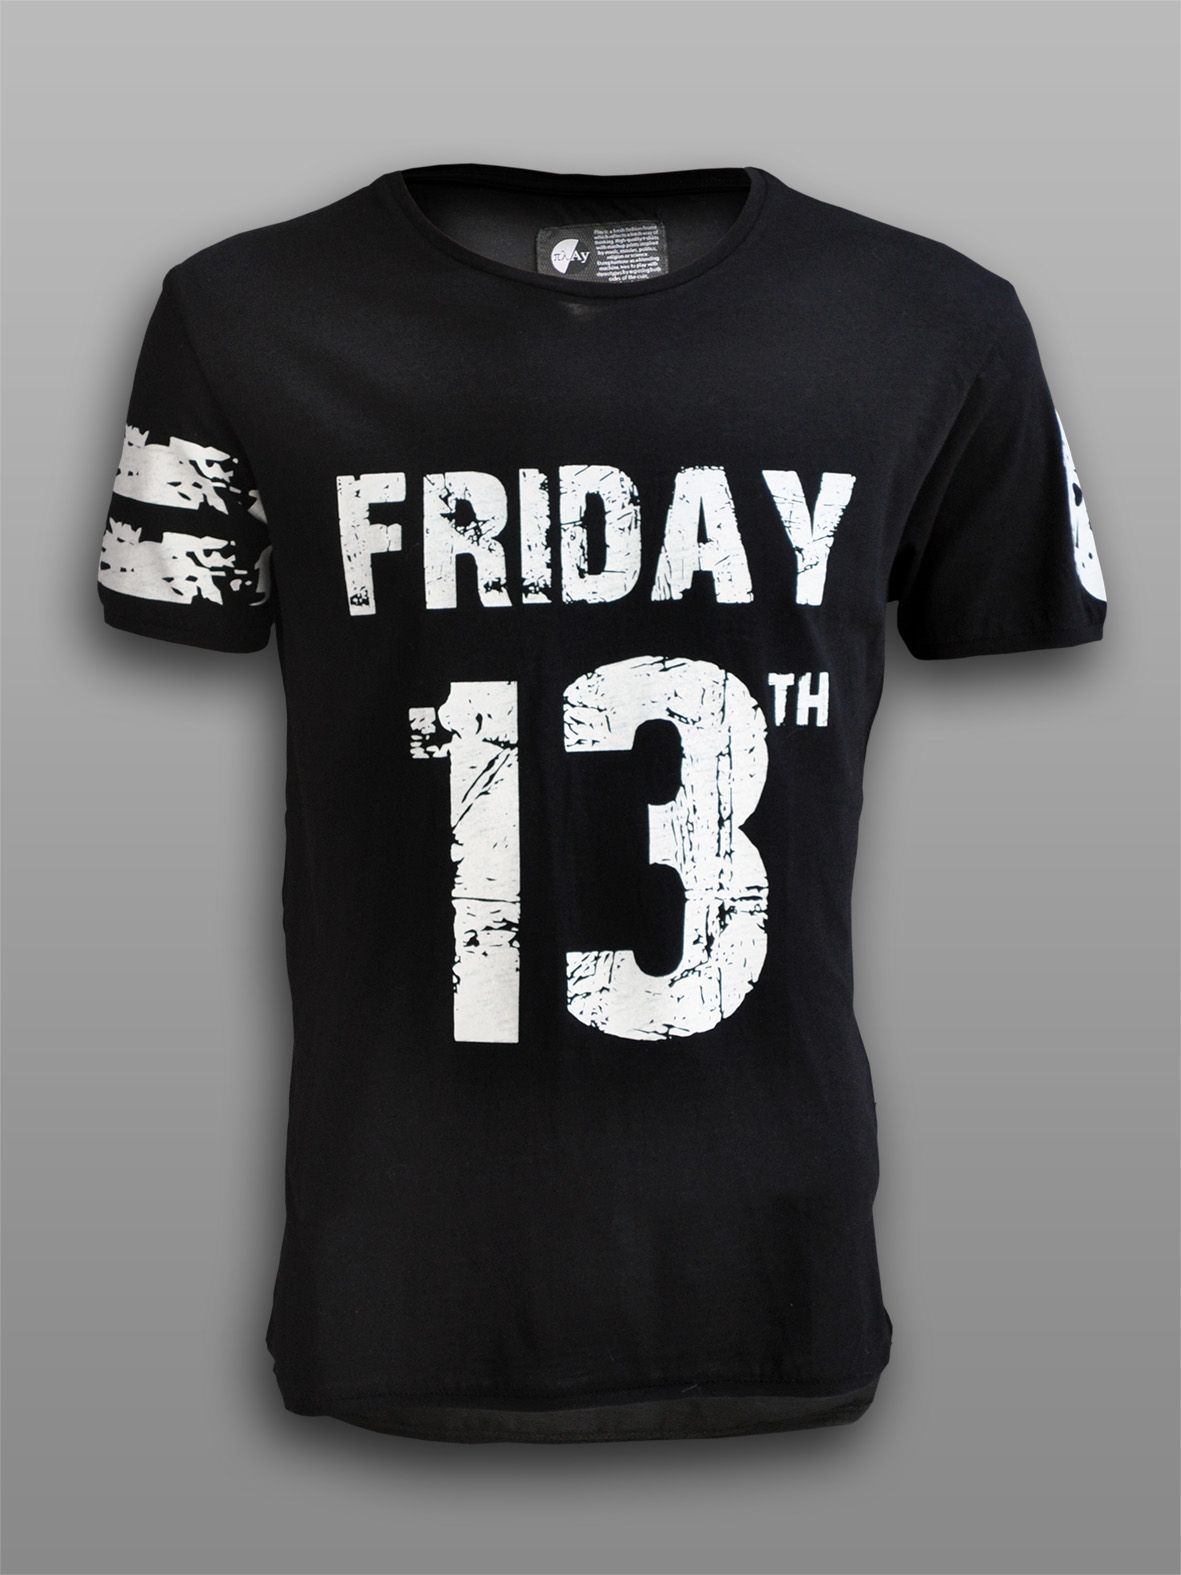 #friday #13th #play #shirts #tshirt #tee #clothing #wear